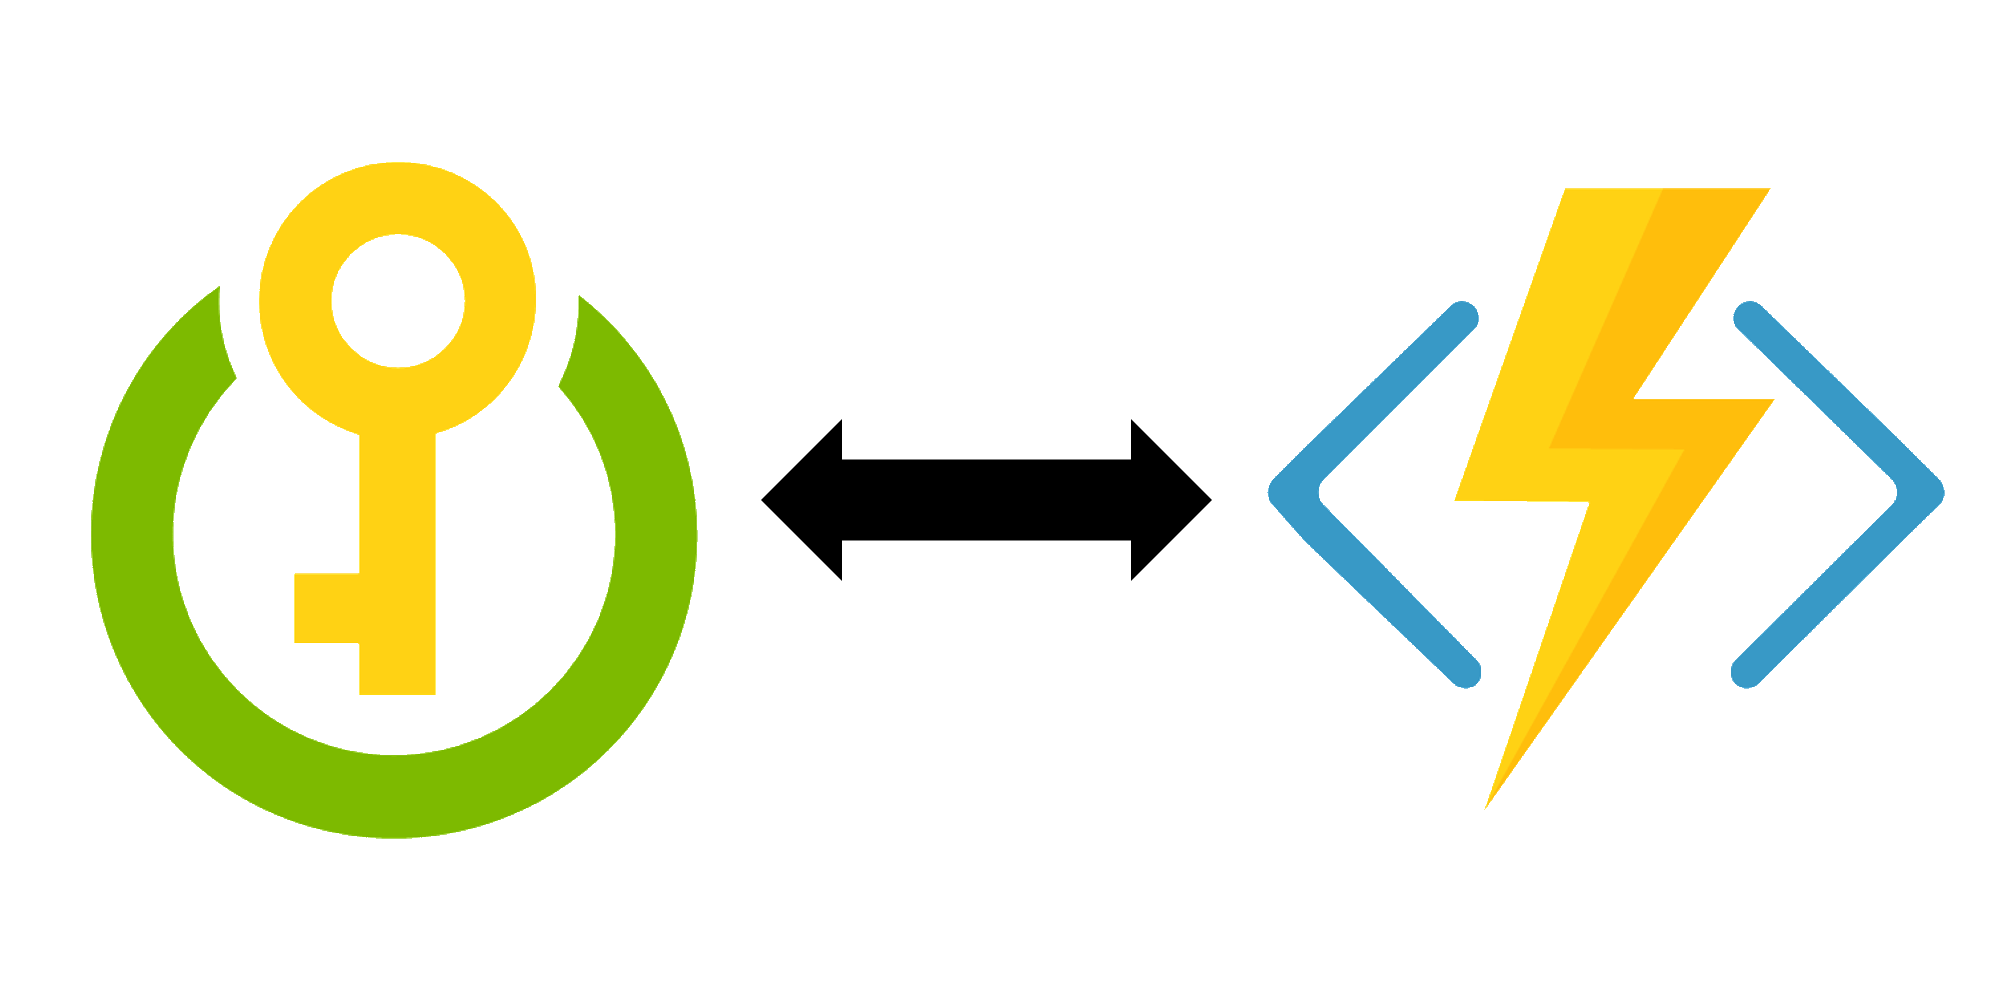 Accessing Key Vault from Azure Functions with Managed Identity